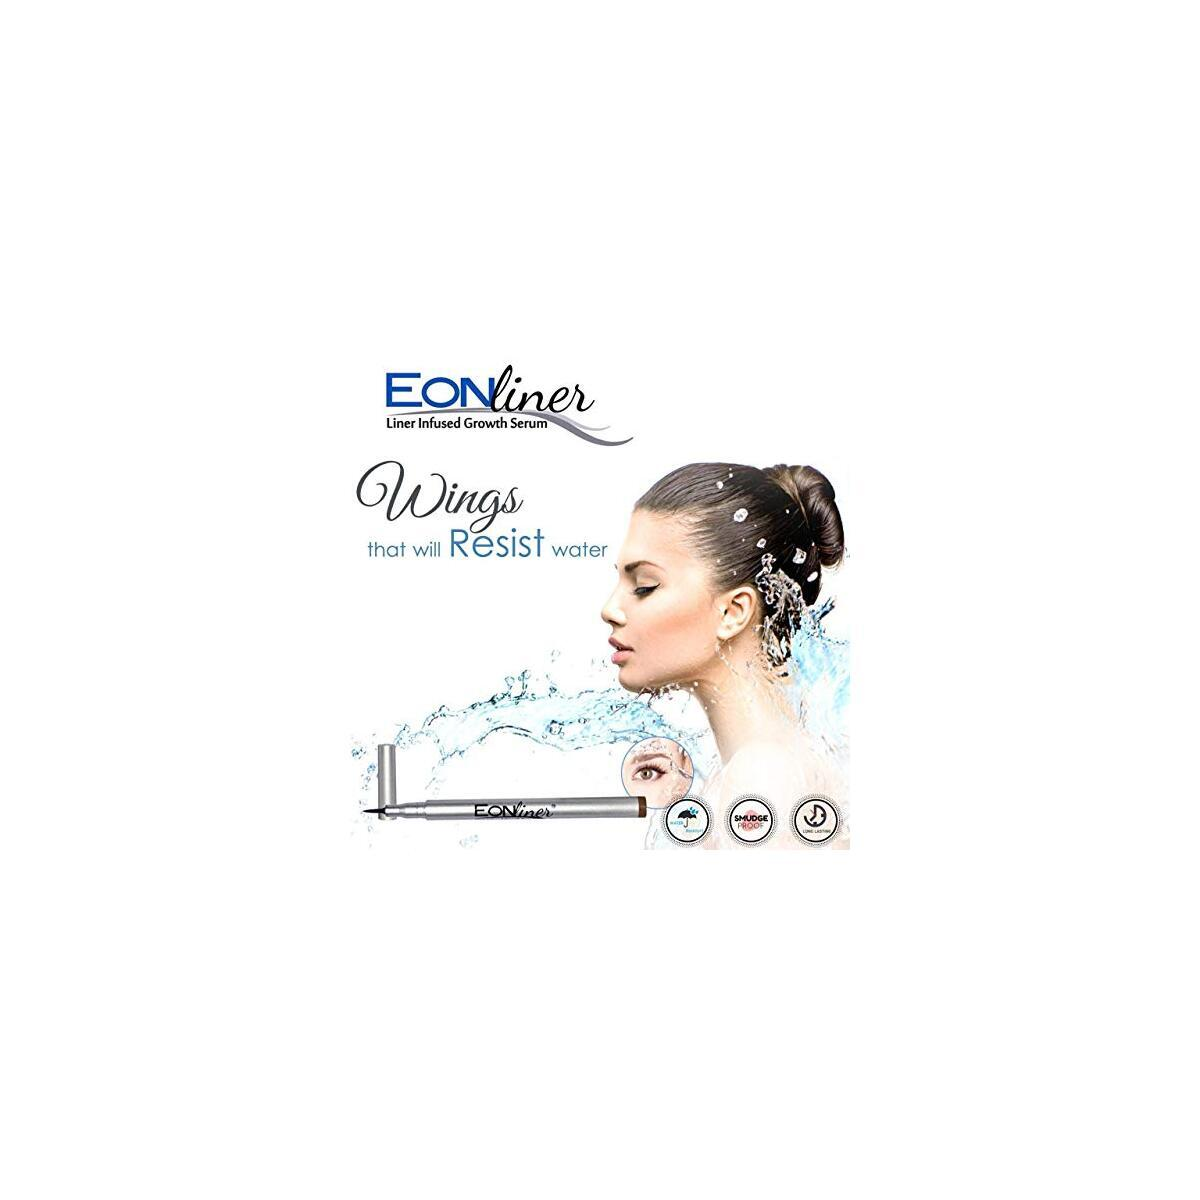 Eyebrow & Eyelash Growth Serum with Eyeliner Liquid pen - Hypoallergenic and Paraben Free Formula for Longer, Thicker Eyebrows, and Lavish Lashes | Super Slim Long-Lasting - 12 Hours Treatment